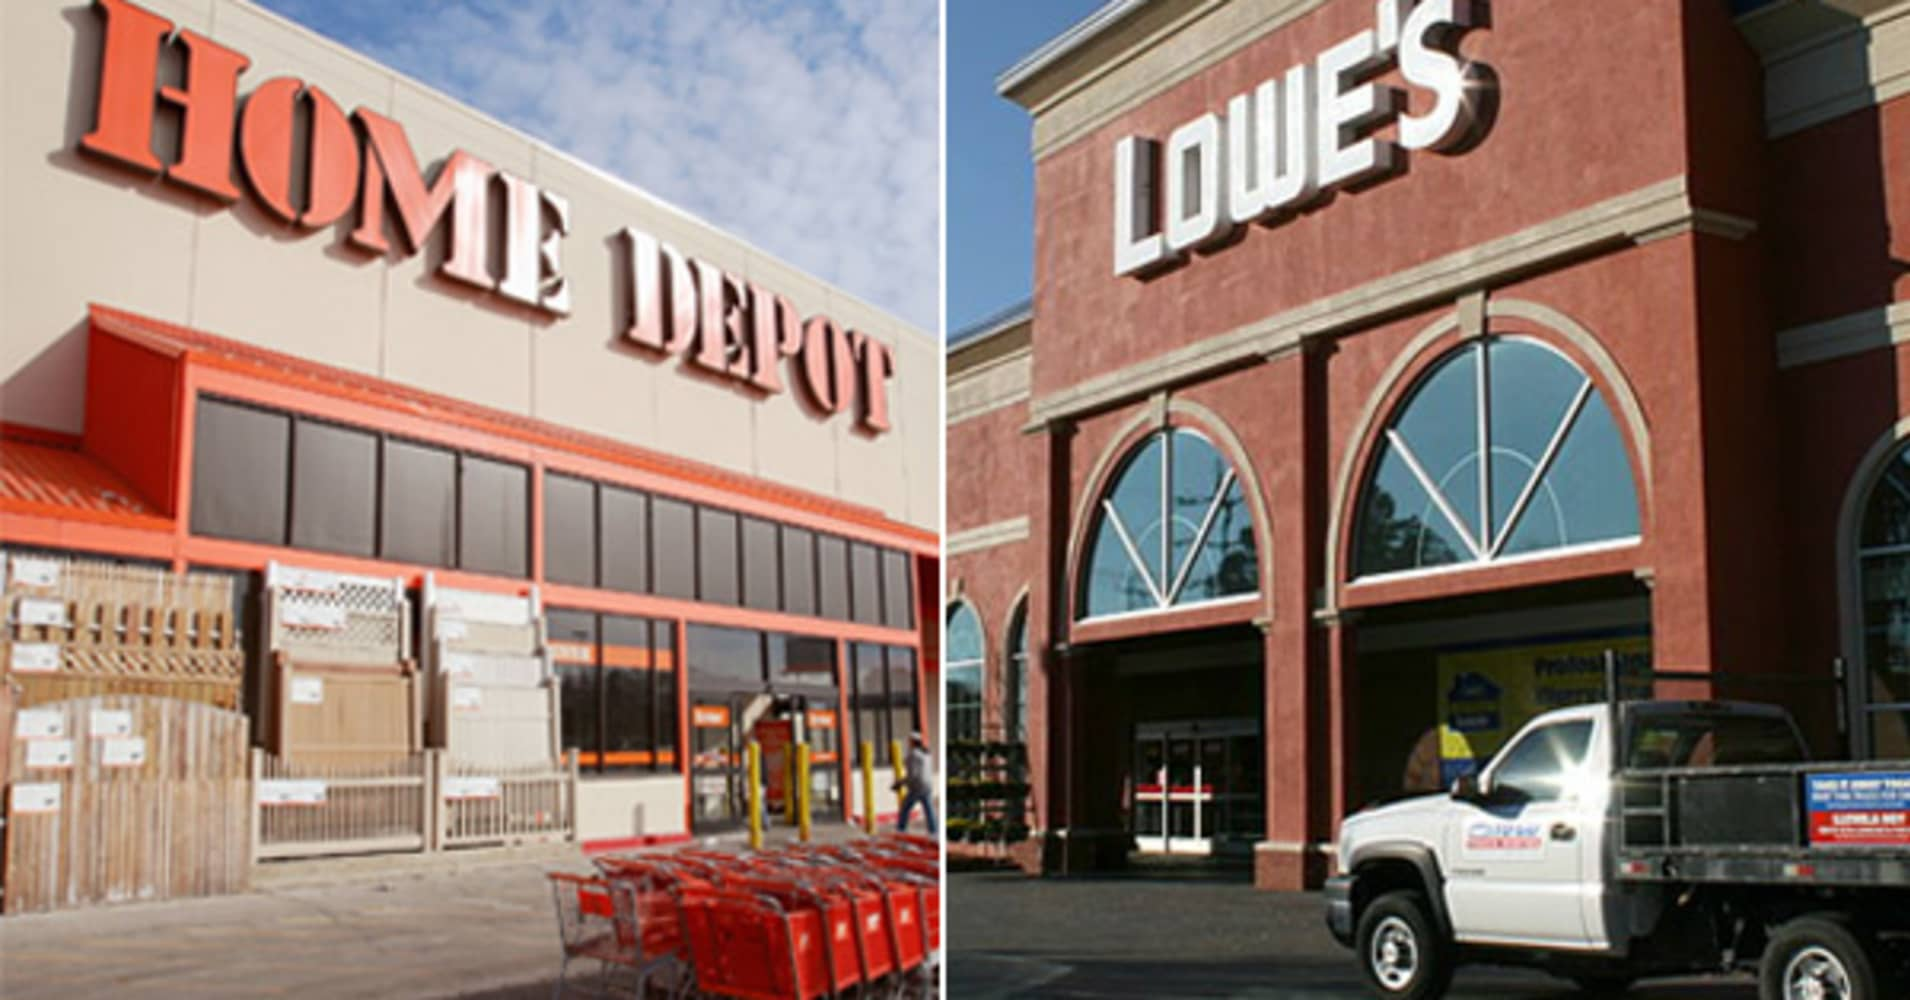 Cramer On Lowe 39 S Vs Home Depot I 39 M Changing My Opinion